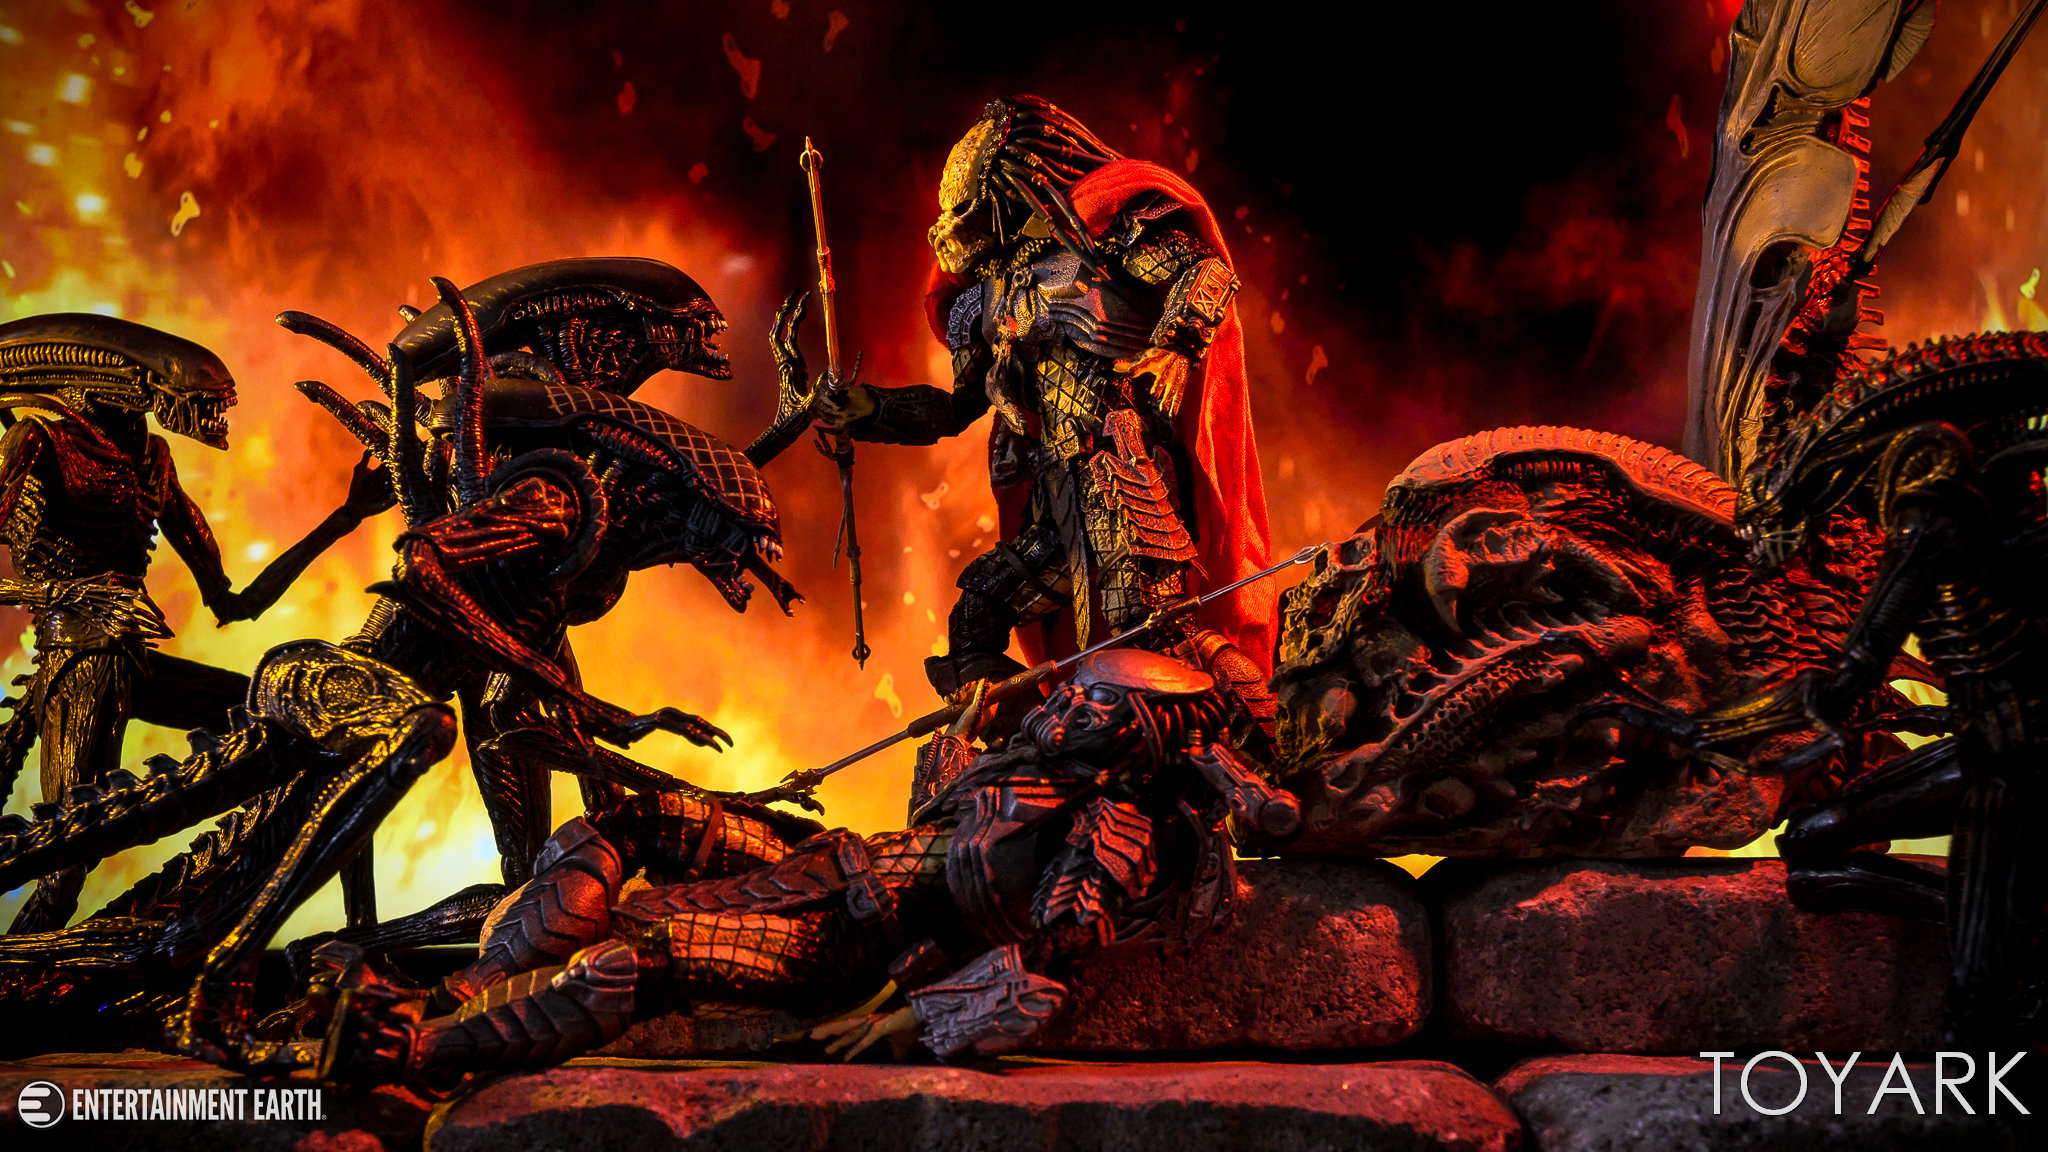 https://news.toyark.com/wp-content/uploads/sites/4/2018/05/NECA-Predator-Throne-047.jpg